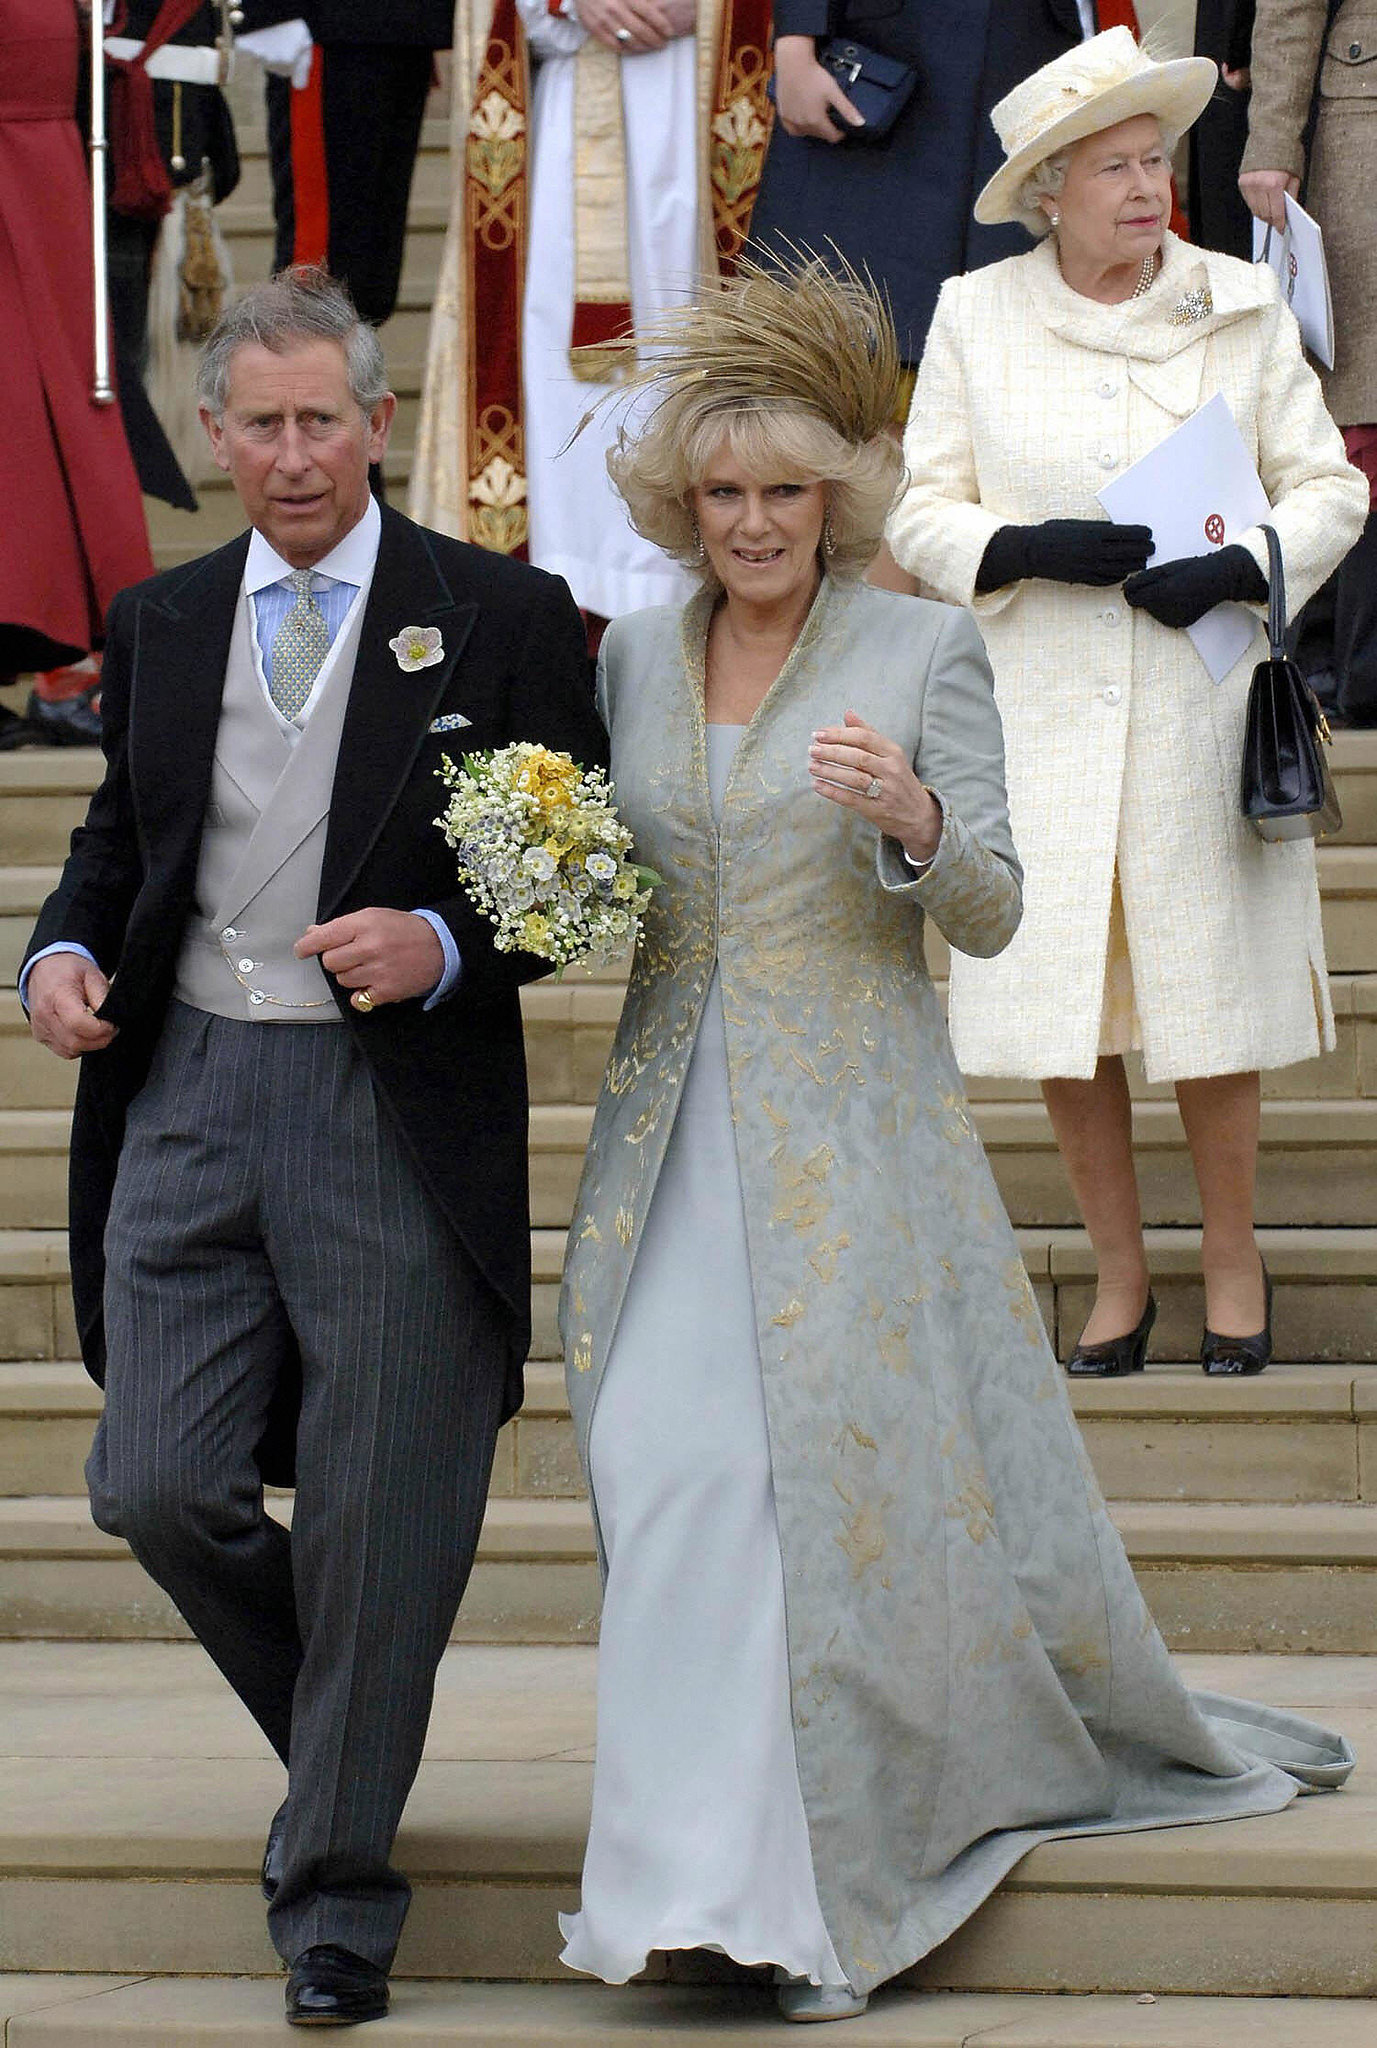 Prince Charles And Camilla Parker Bowles The Bride